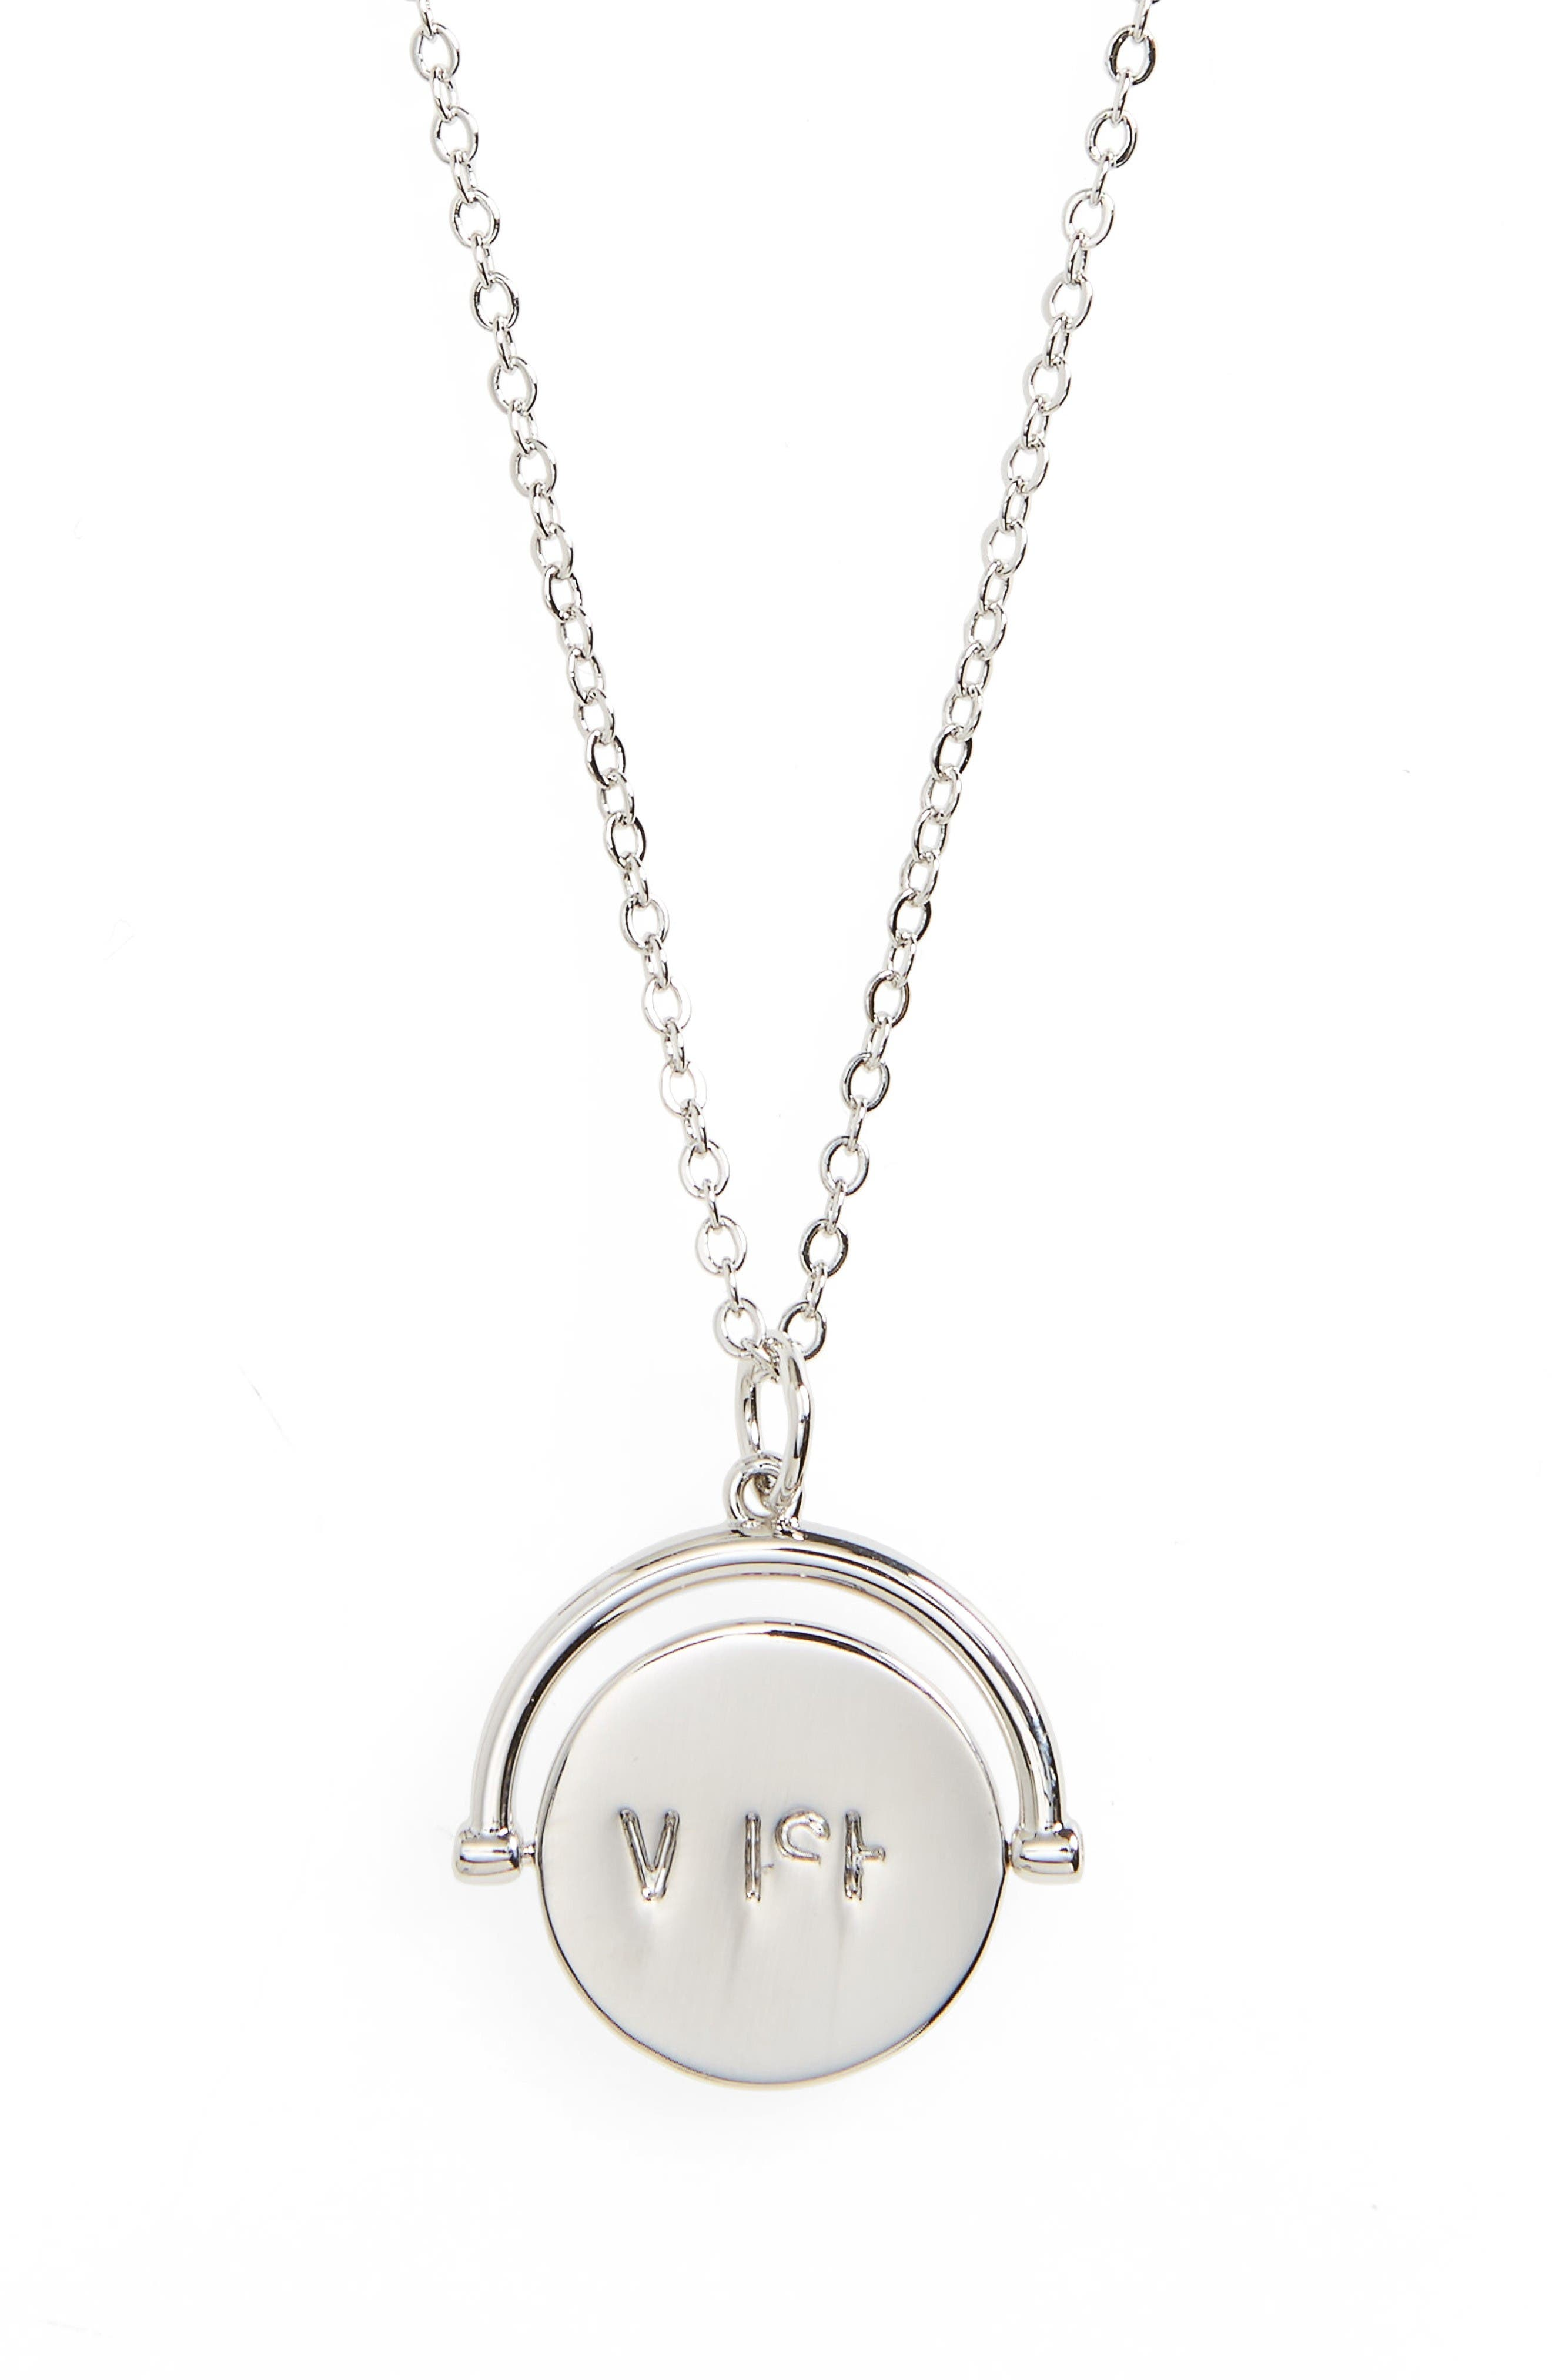 Wish Love Code Charm Necklace,                         Main,                         color, Wish/ Silver